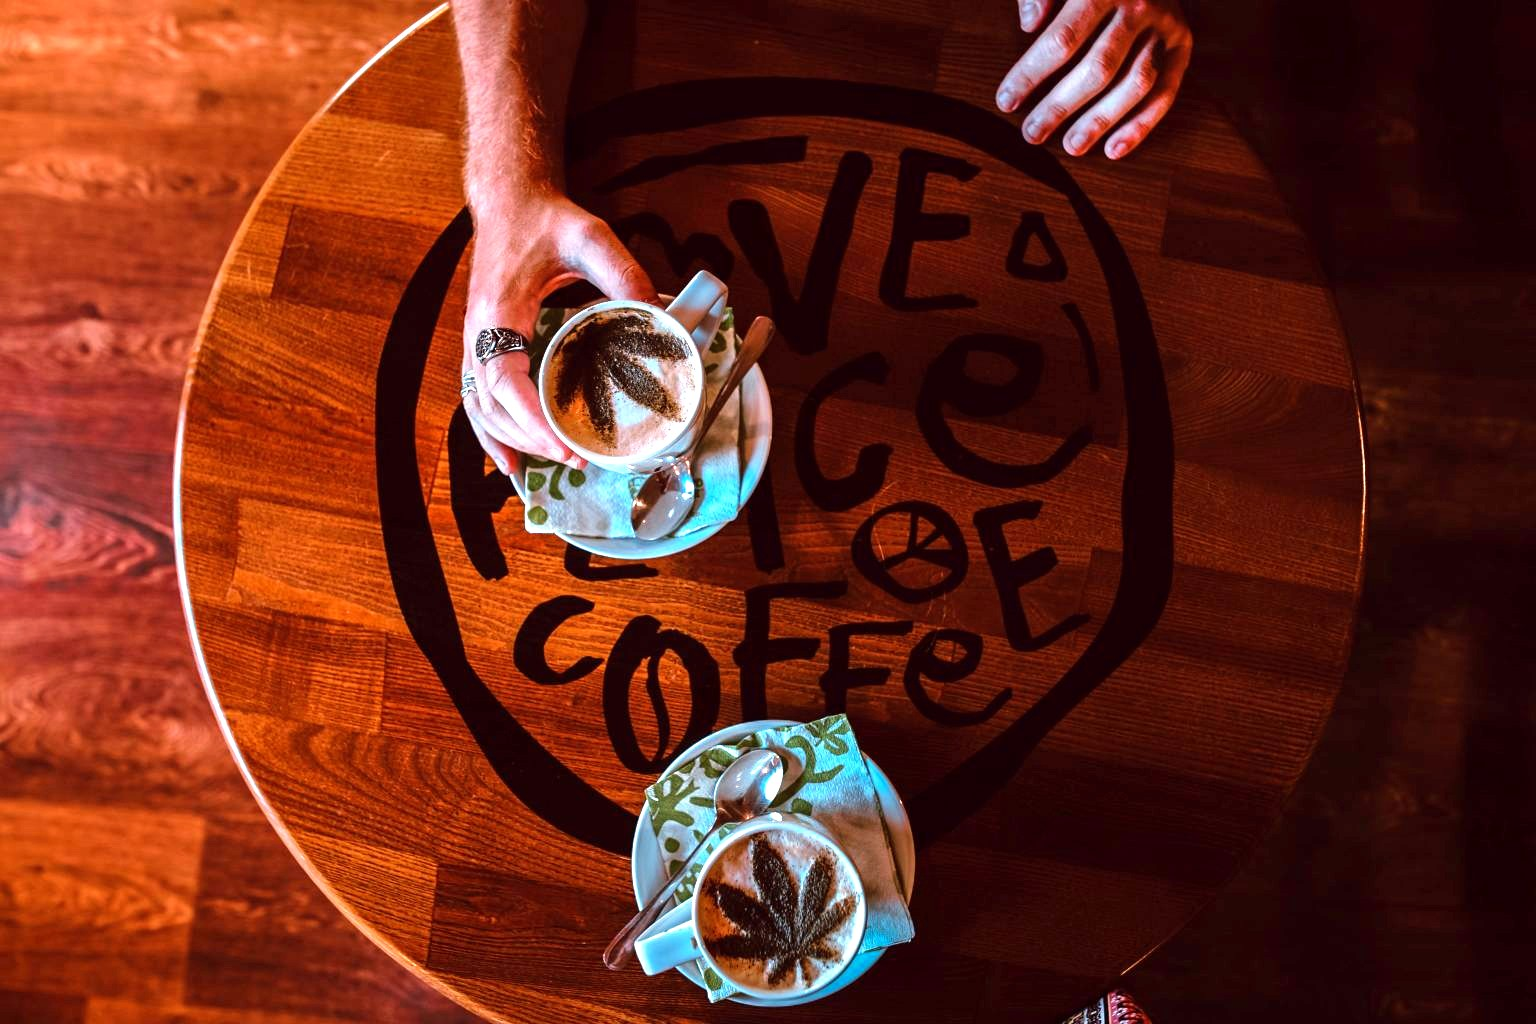 Mixing Caffeine and Cannabis Bring New Risks photo